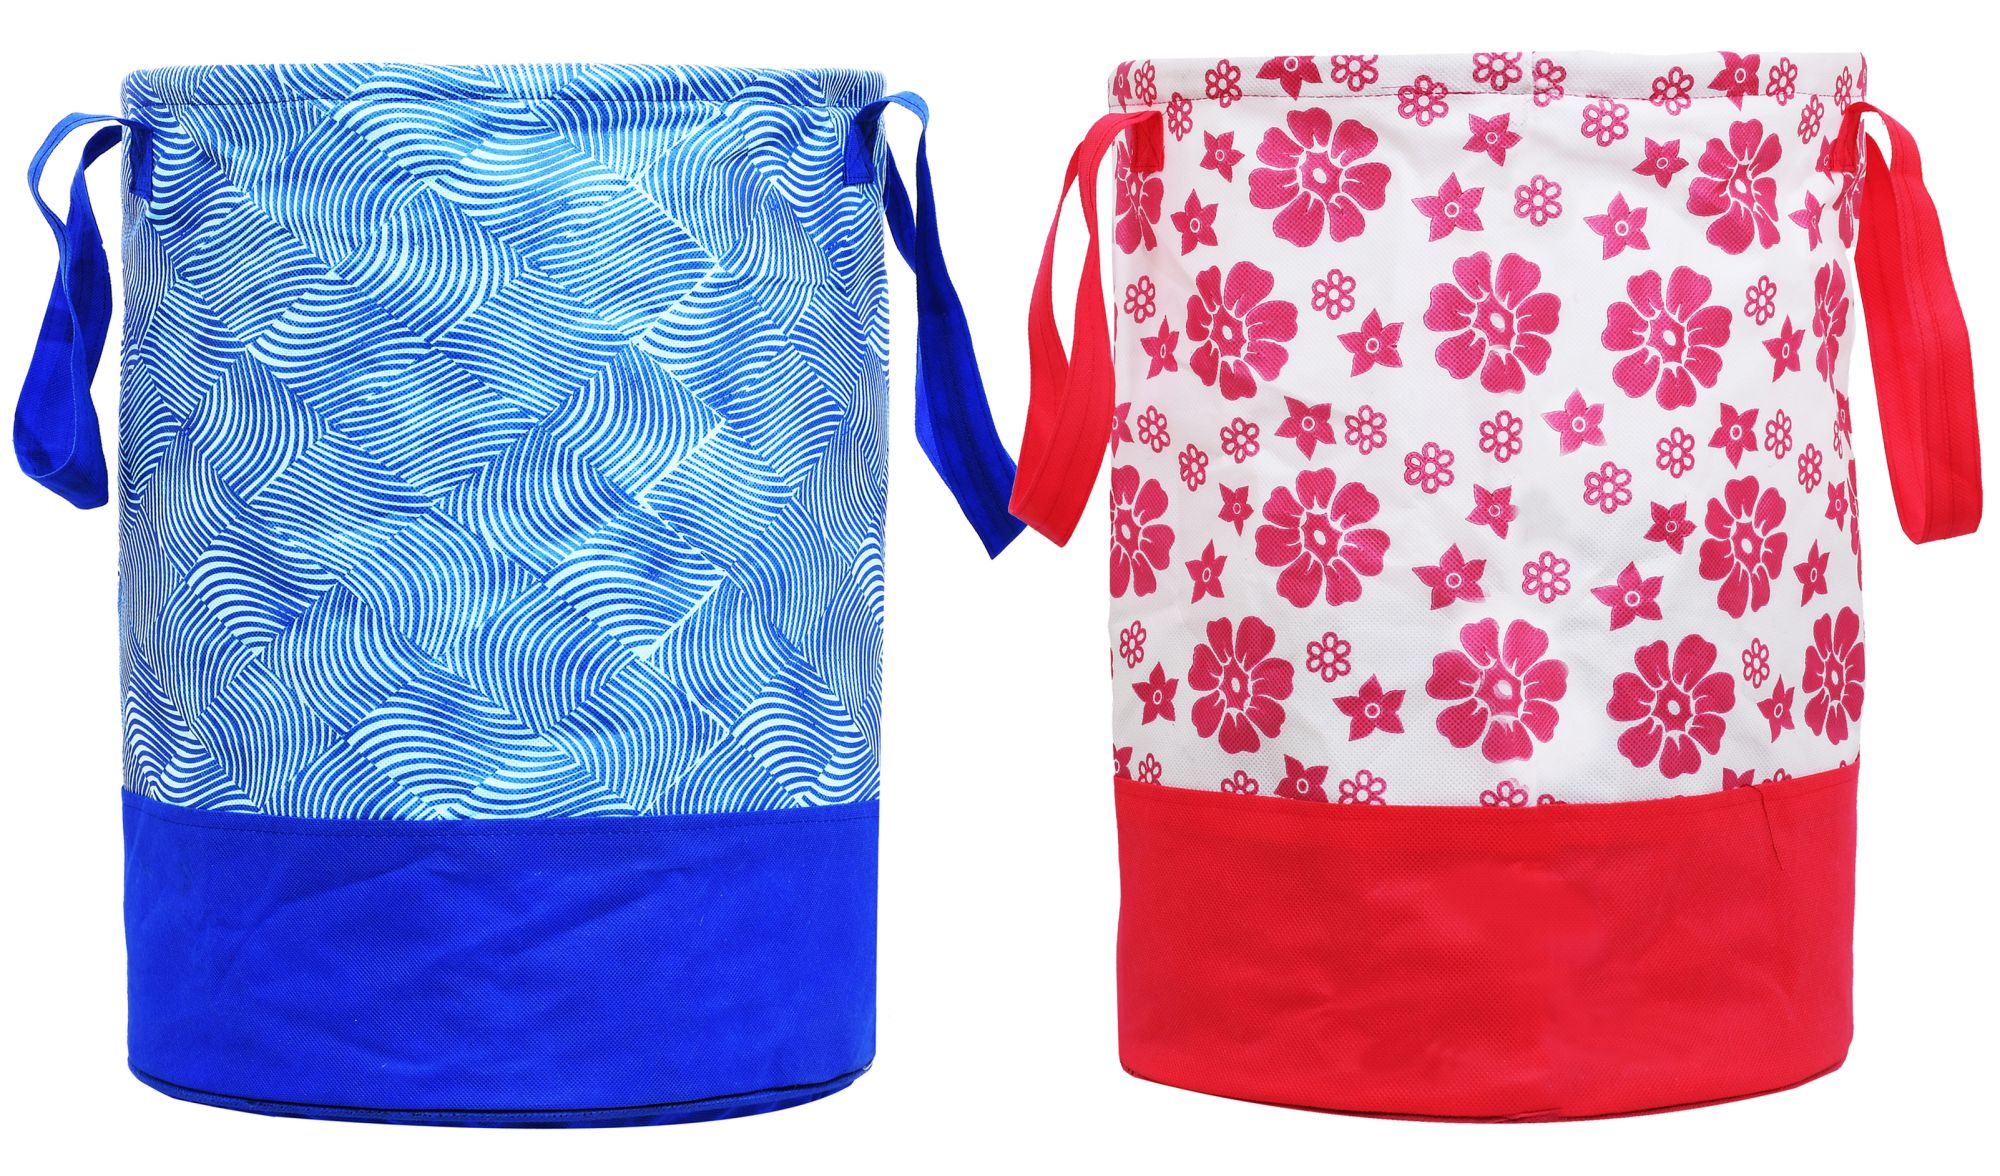 Kuber Industries Printed 2 Pieces Waterproof Canvas Laundry Bag,Toy Storage,Laundry Basket Organizer 45 L (Pink & Blue)